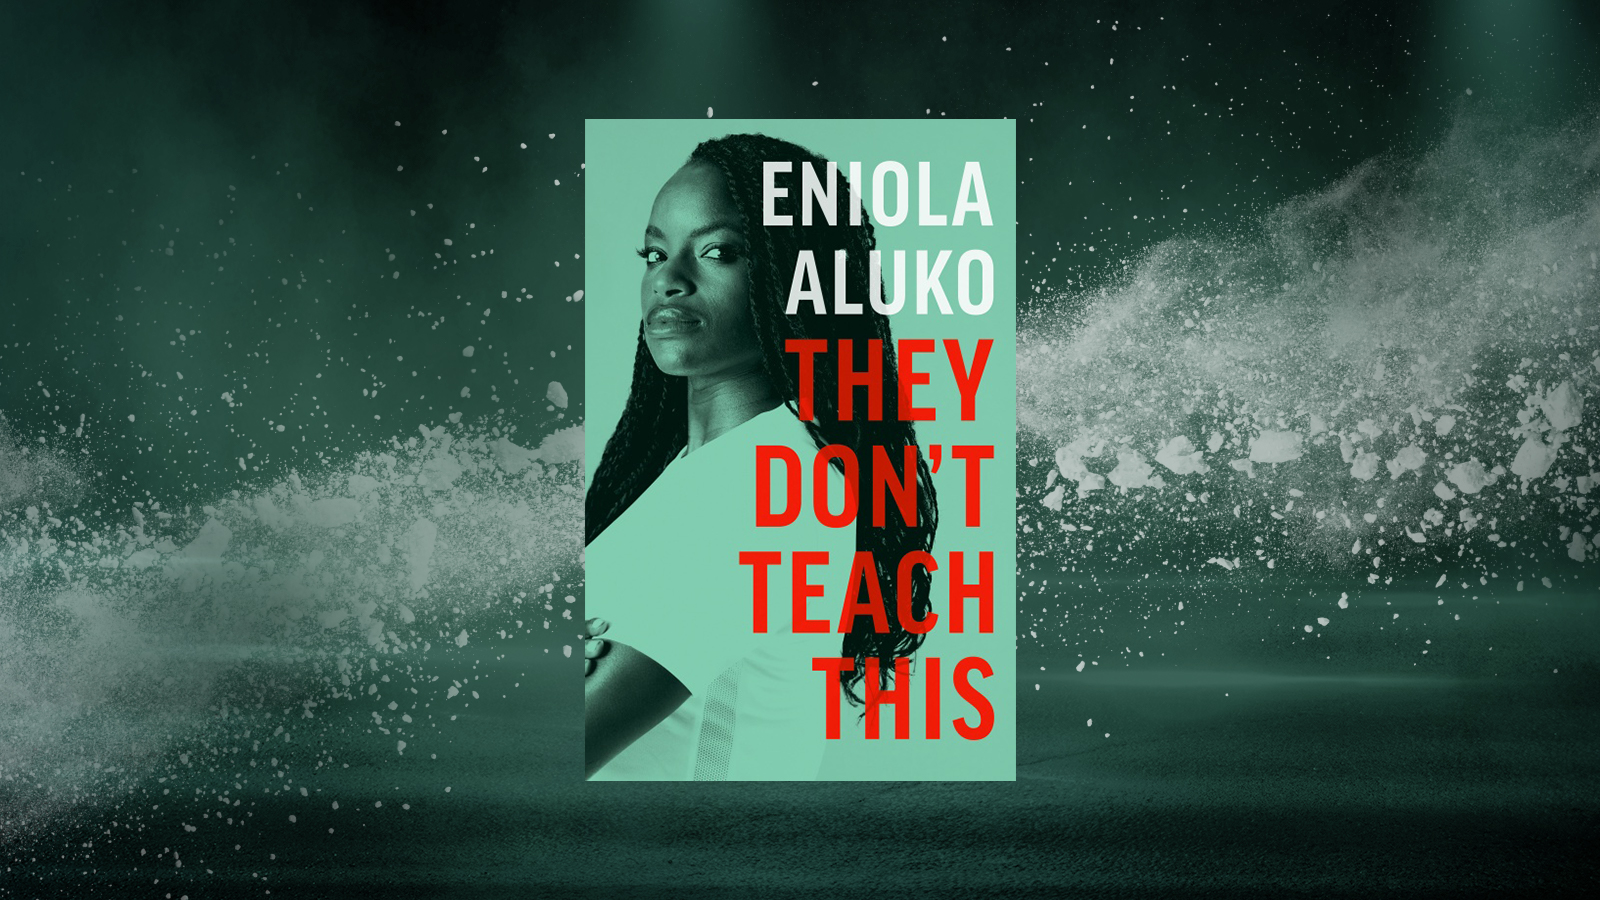 Interview with Josie Le Blond, Ghostwriter of Eniola Aluko's Autobiography 'They Don't Teach This'